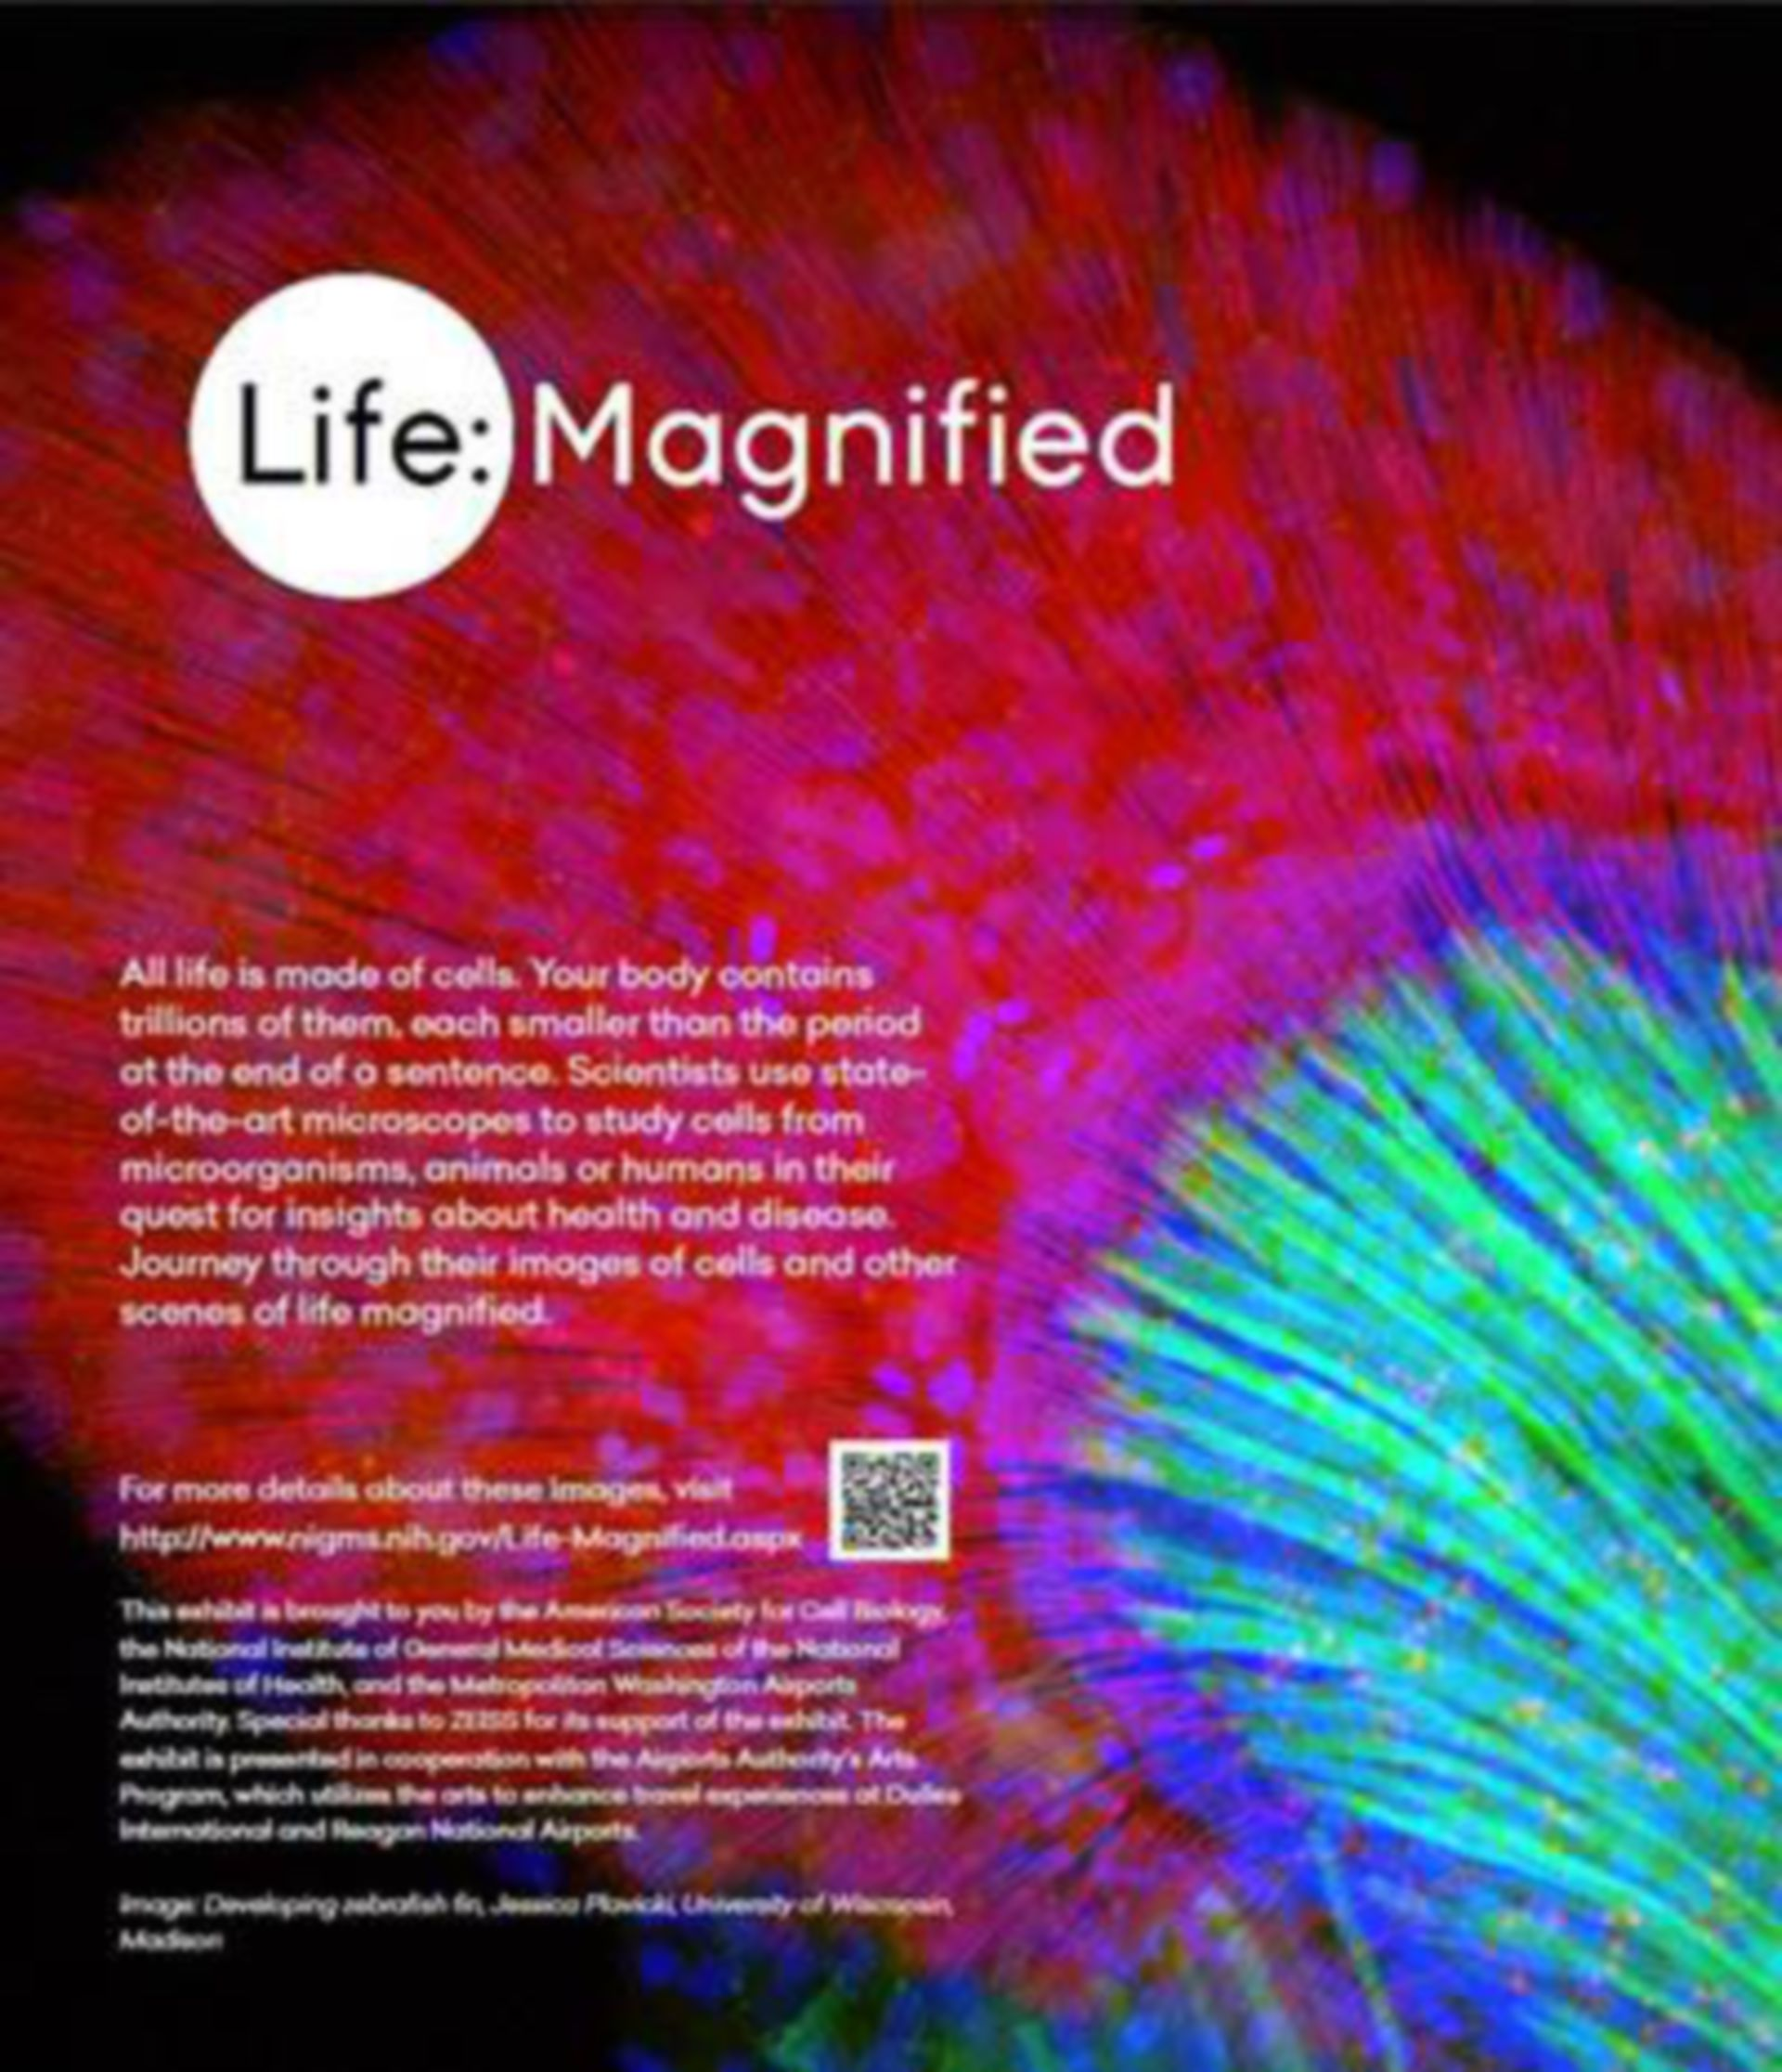 Life Magnified